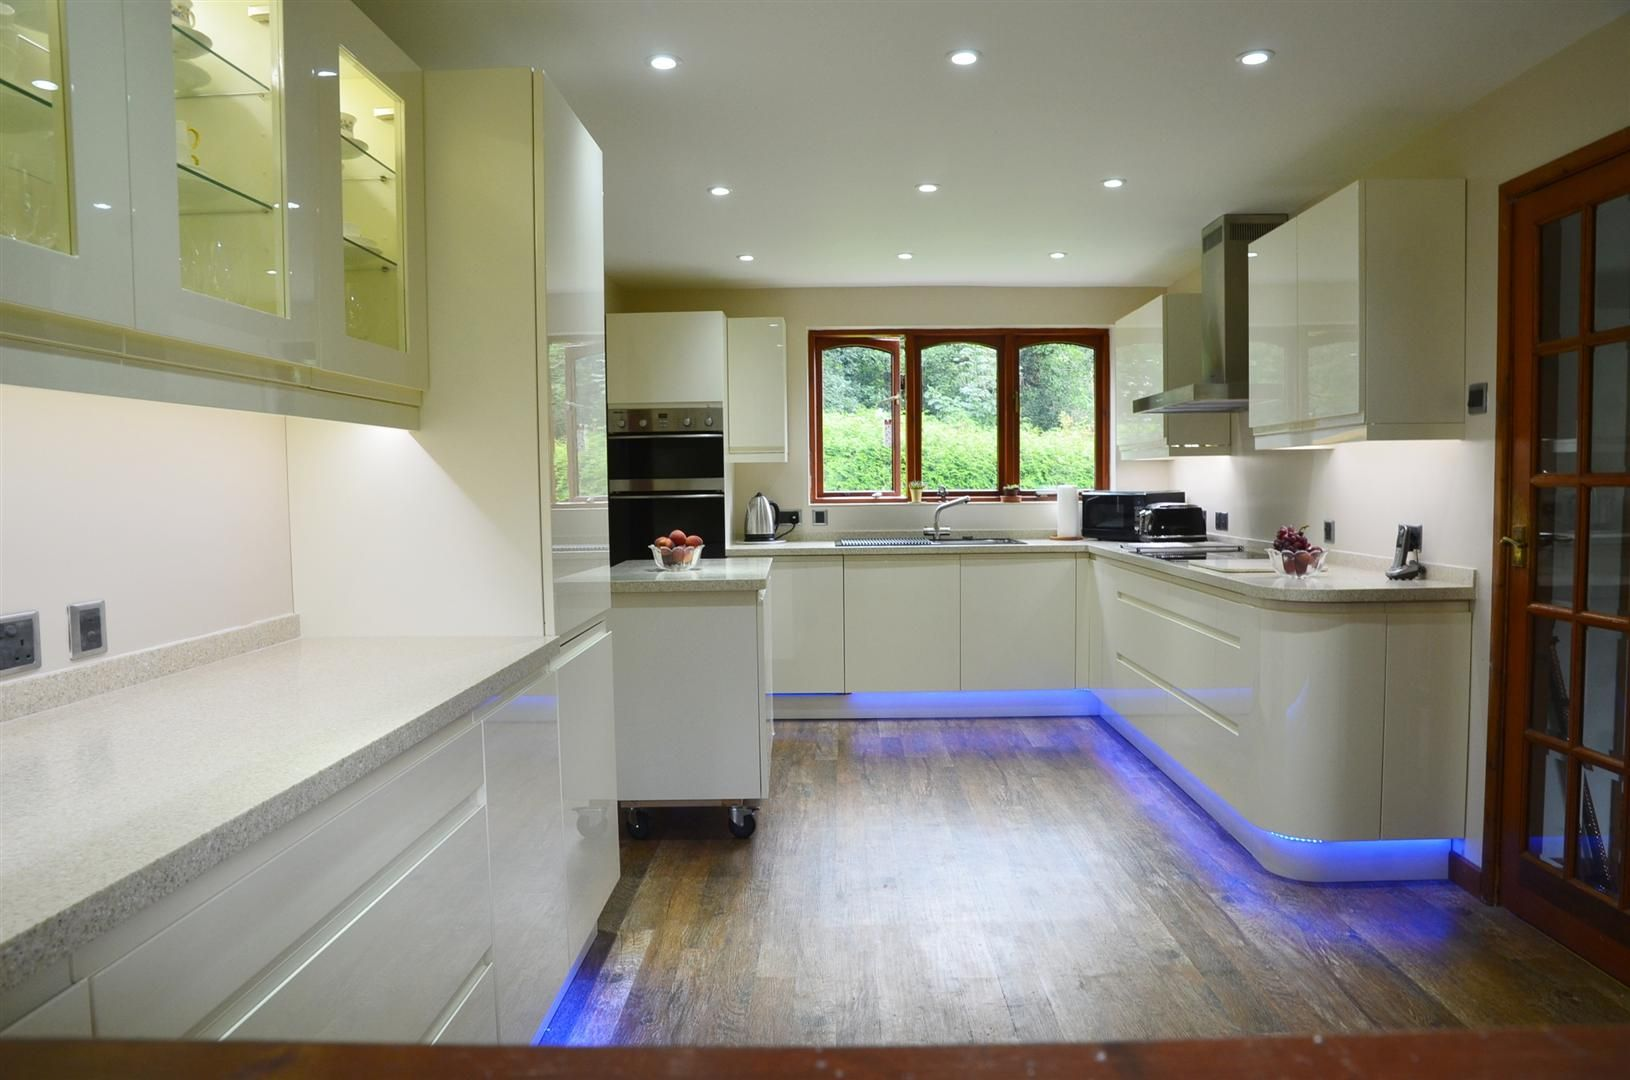 Energy Efficient LED Downlights Combined With Colour Changing LED - Led spotlights kitchen ceiling